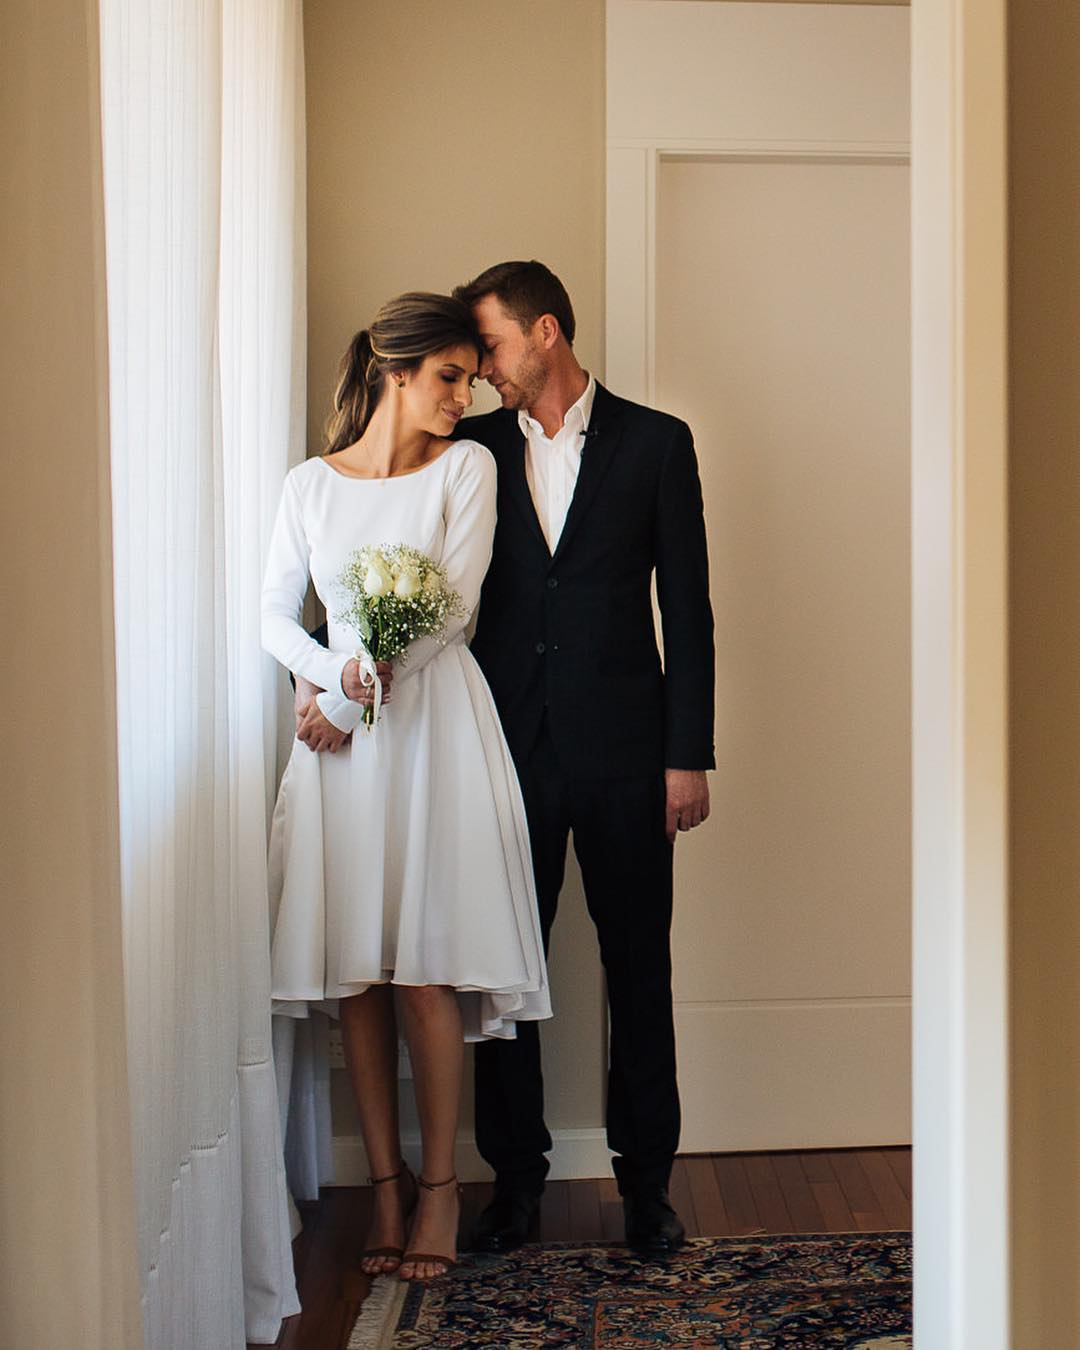 Civil Wedding Outfit Ideas To Marry In Style Page 2 Of 2 My Sweet Engagement